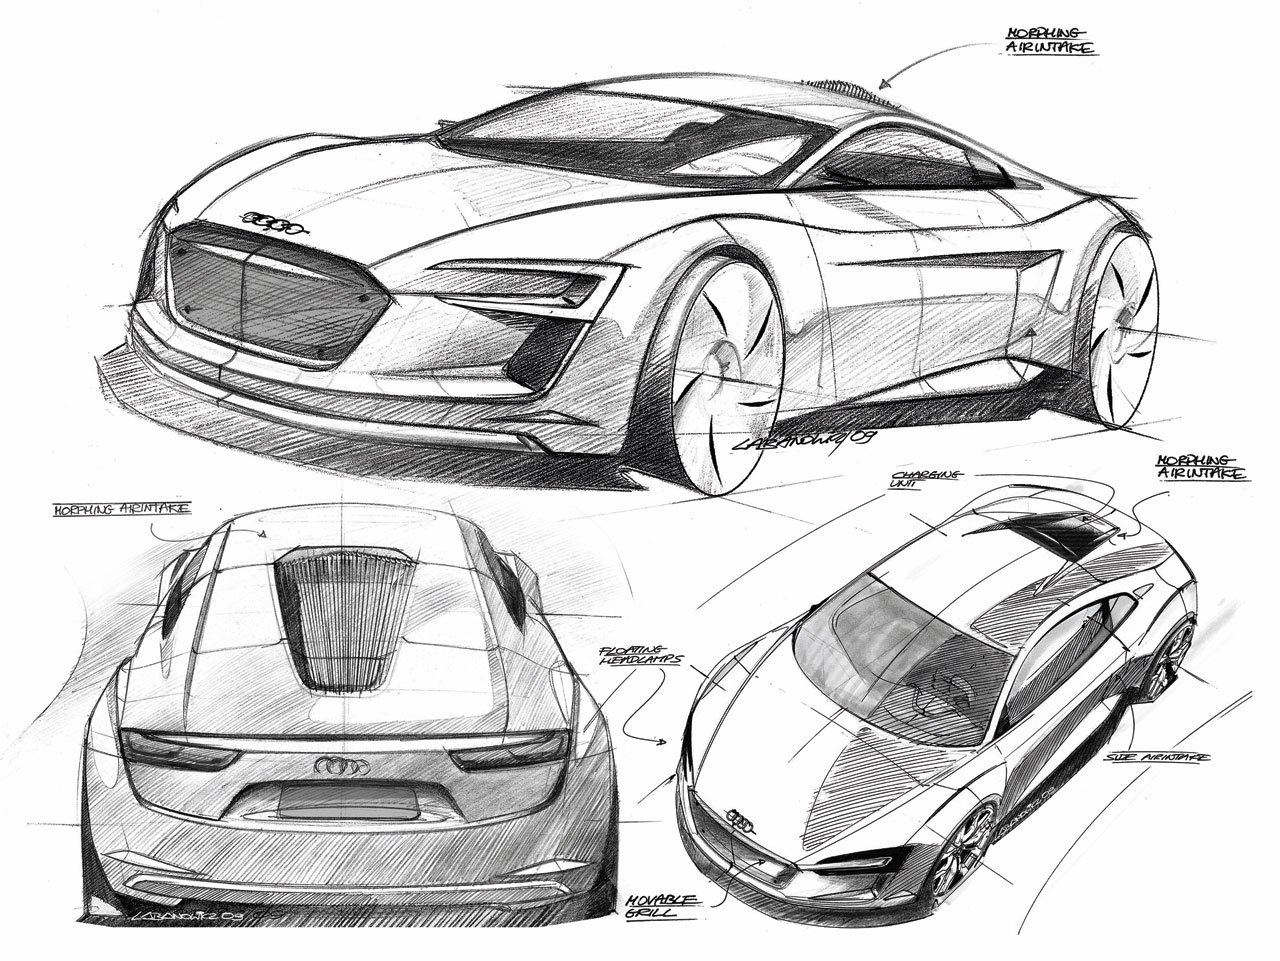 Arbr Bikes Launch 2016 as well New New Car Models 2015 Ireland Release Reviews And Models On besides PbmafP as well Free Eevee Lineart 483324831 also How To Draw Bugatti Chiron. on new koenigsegg 2016